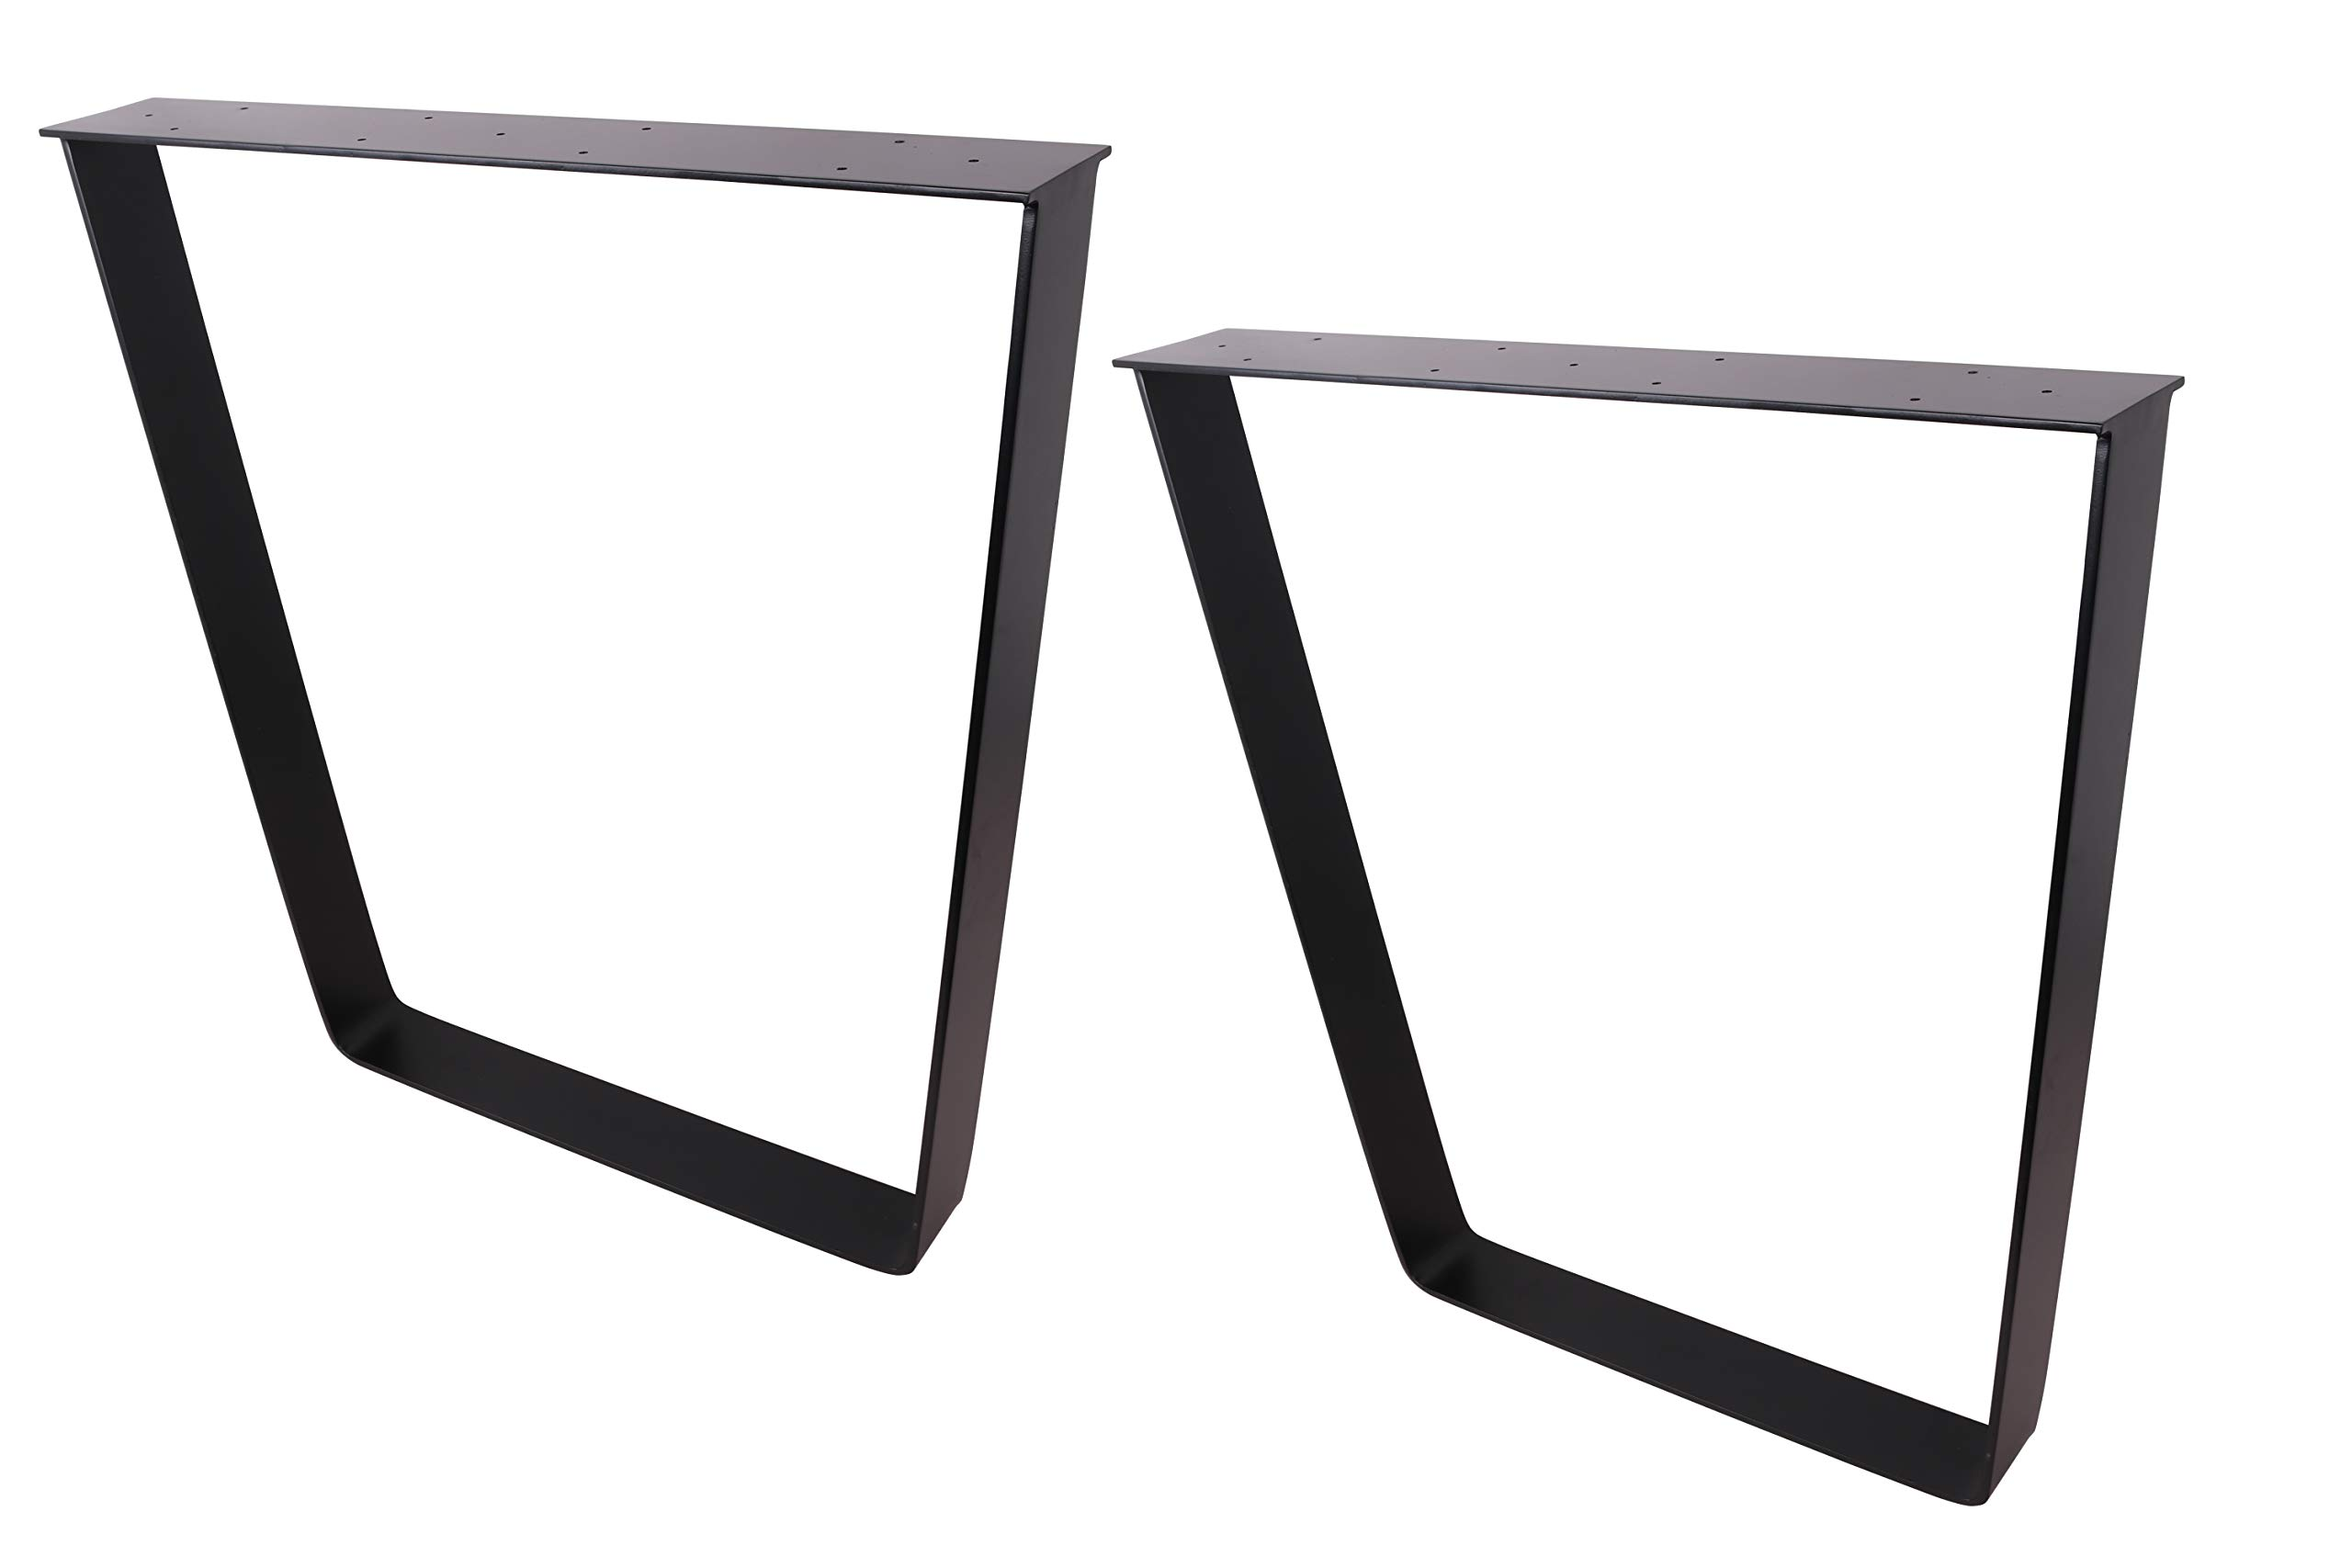 2 x 28'' Trapezoid Shaped Dining Table Legs, Heavy Duty Inverted trapezoidal Steel table legs, Office Table Legs,Computer Desk Legs,Industrial kitchen table legs,Country Style Table Legs,Set of 2,Black by ECLV (Image #1)